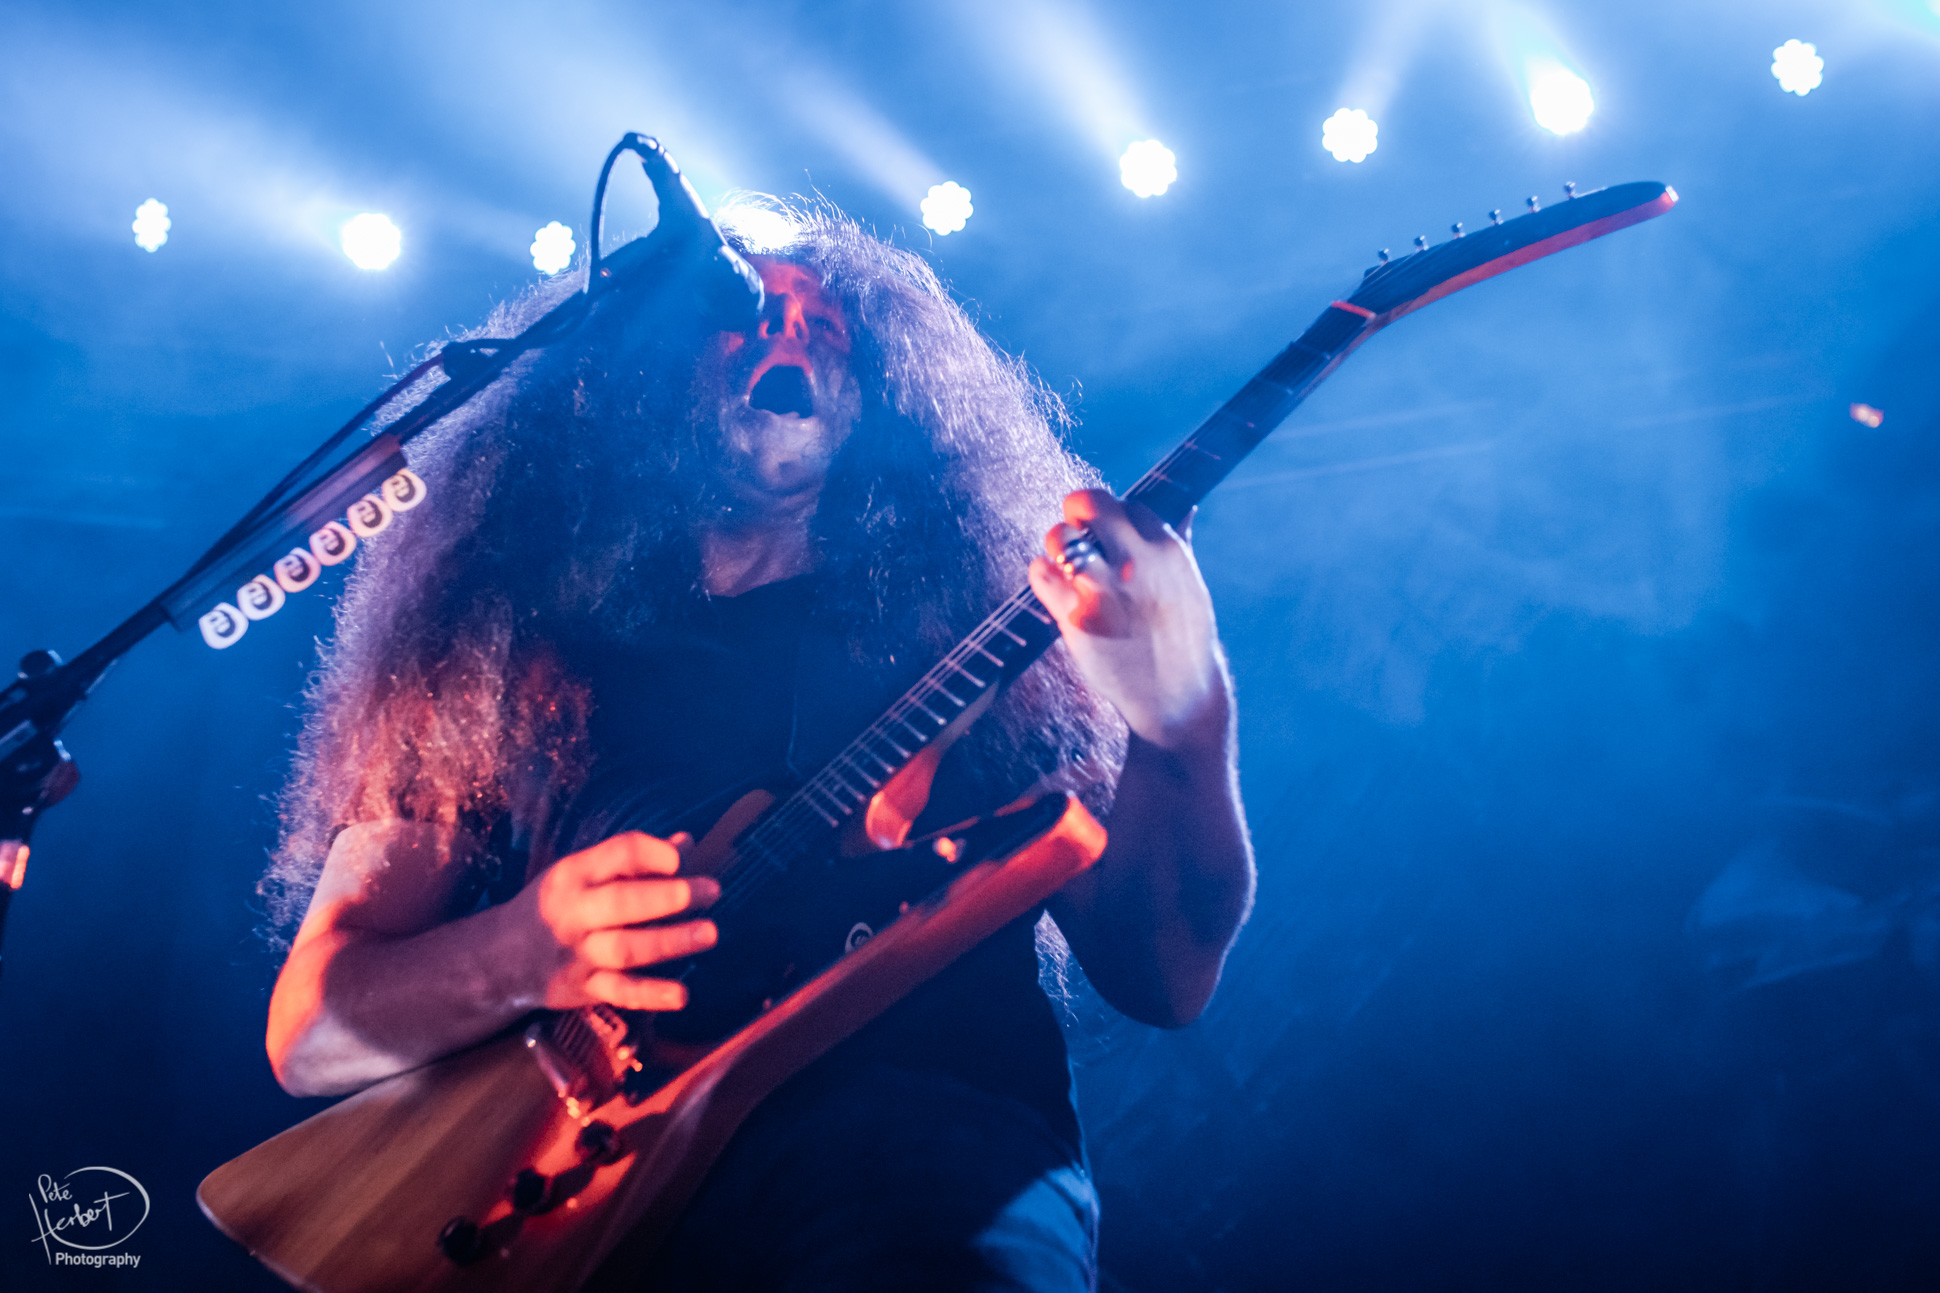 Coheed & Cambria - The Roundhouse - 16.10.18 - London-25.JPG